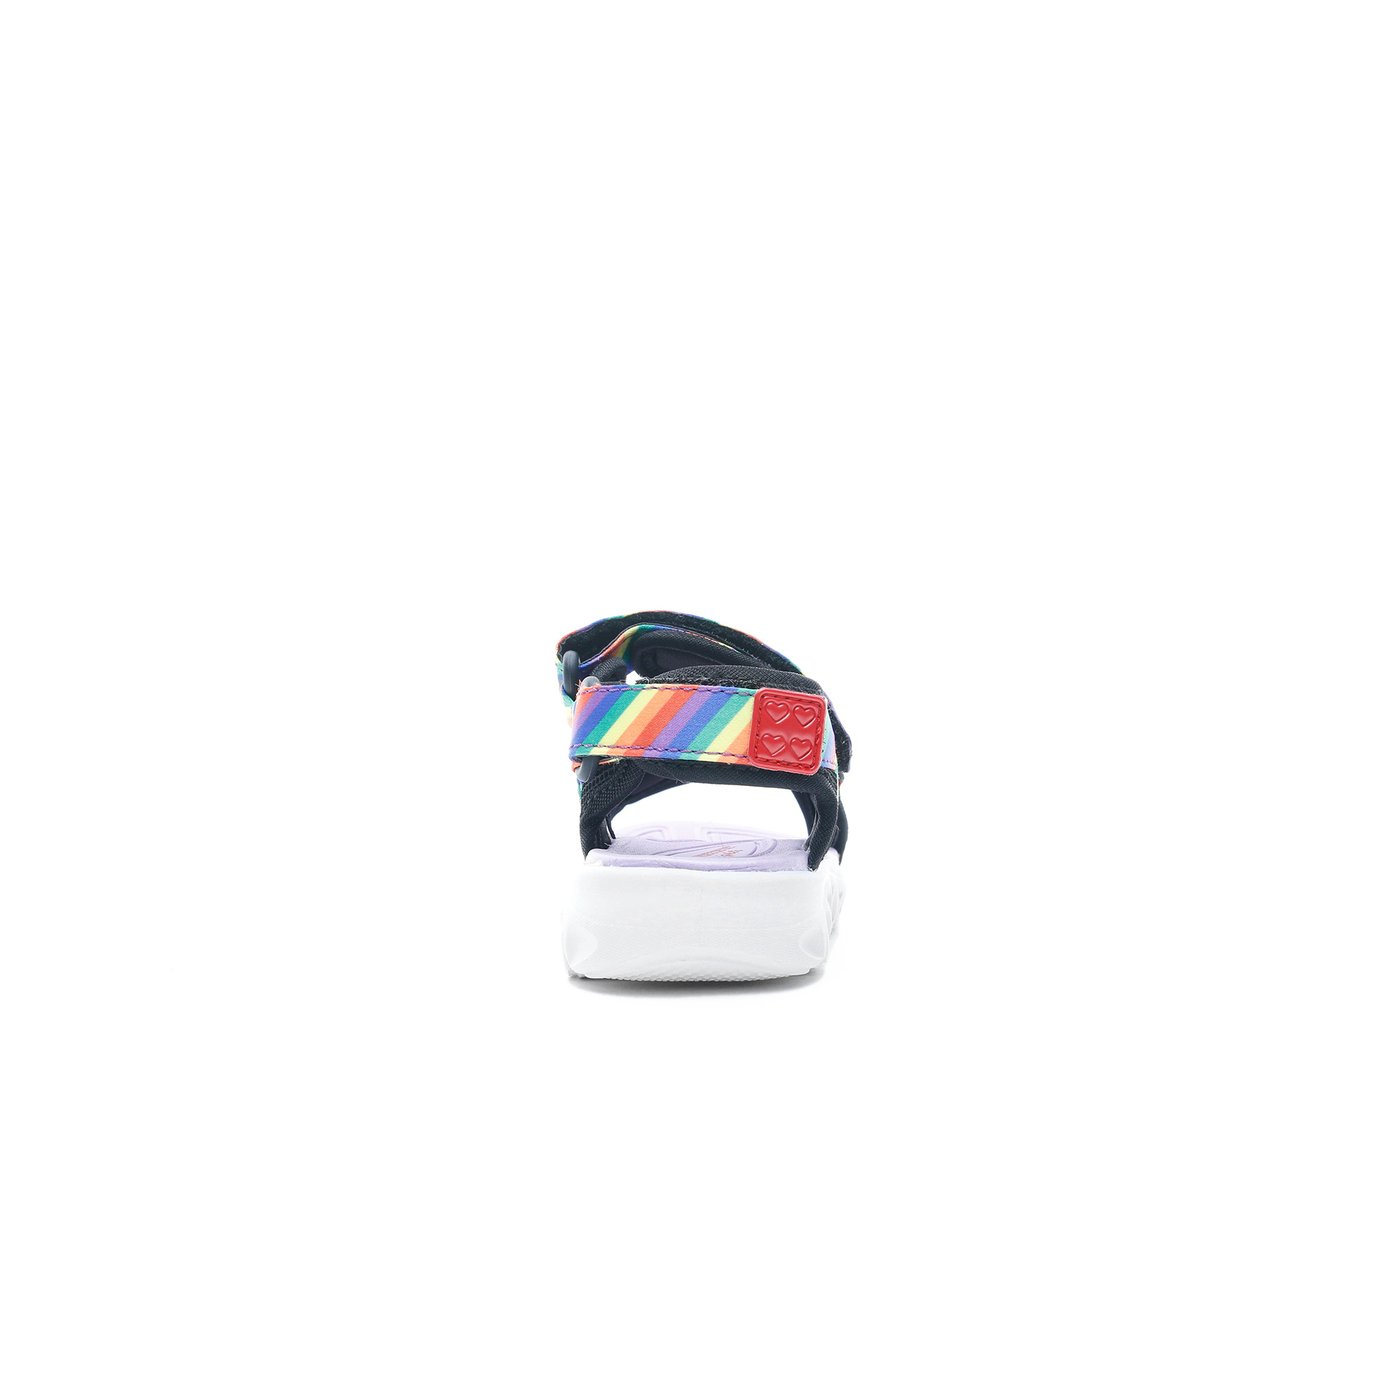 Skechers Hypno Splash - Rainbow Lights Bebek Siyah Sandalet